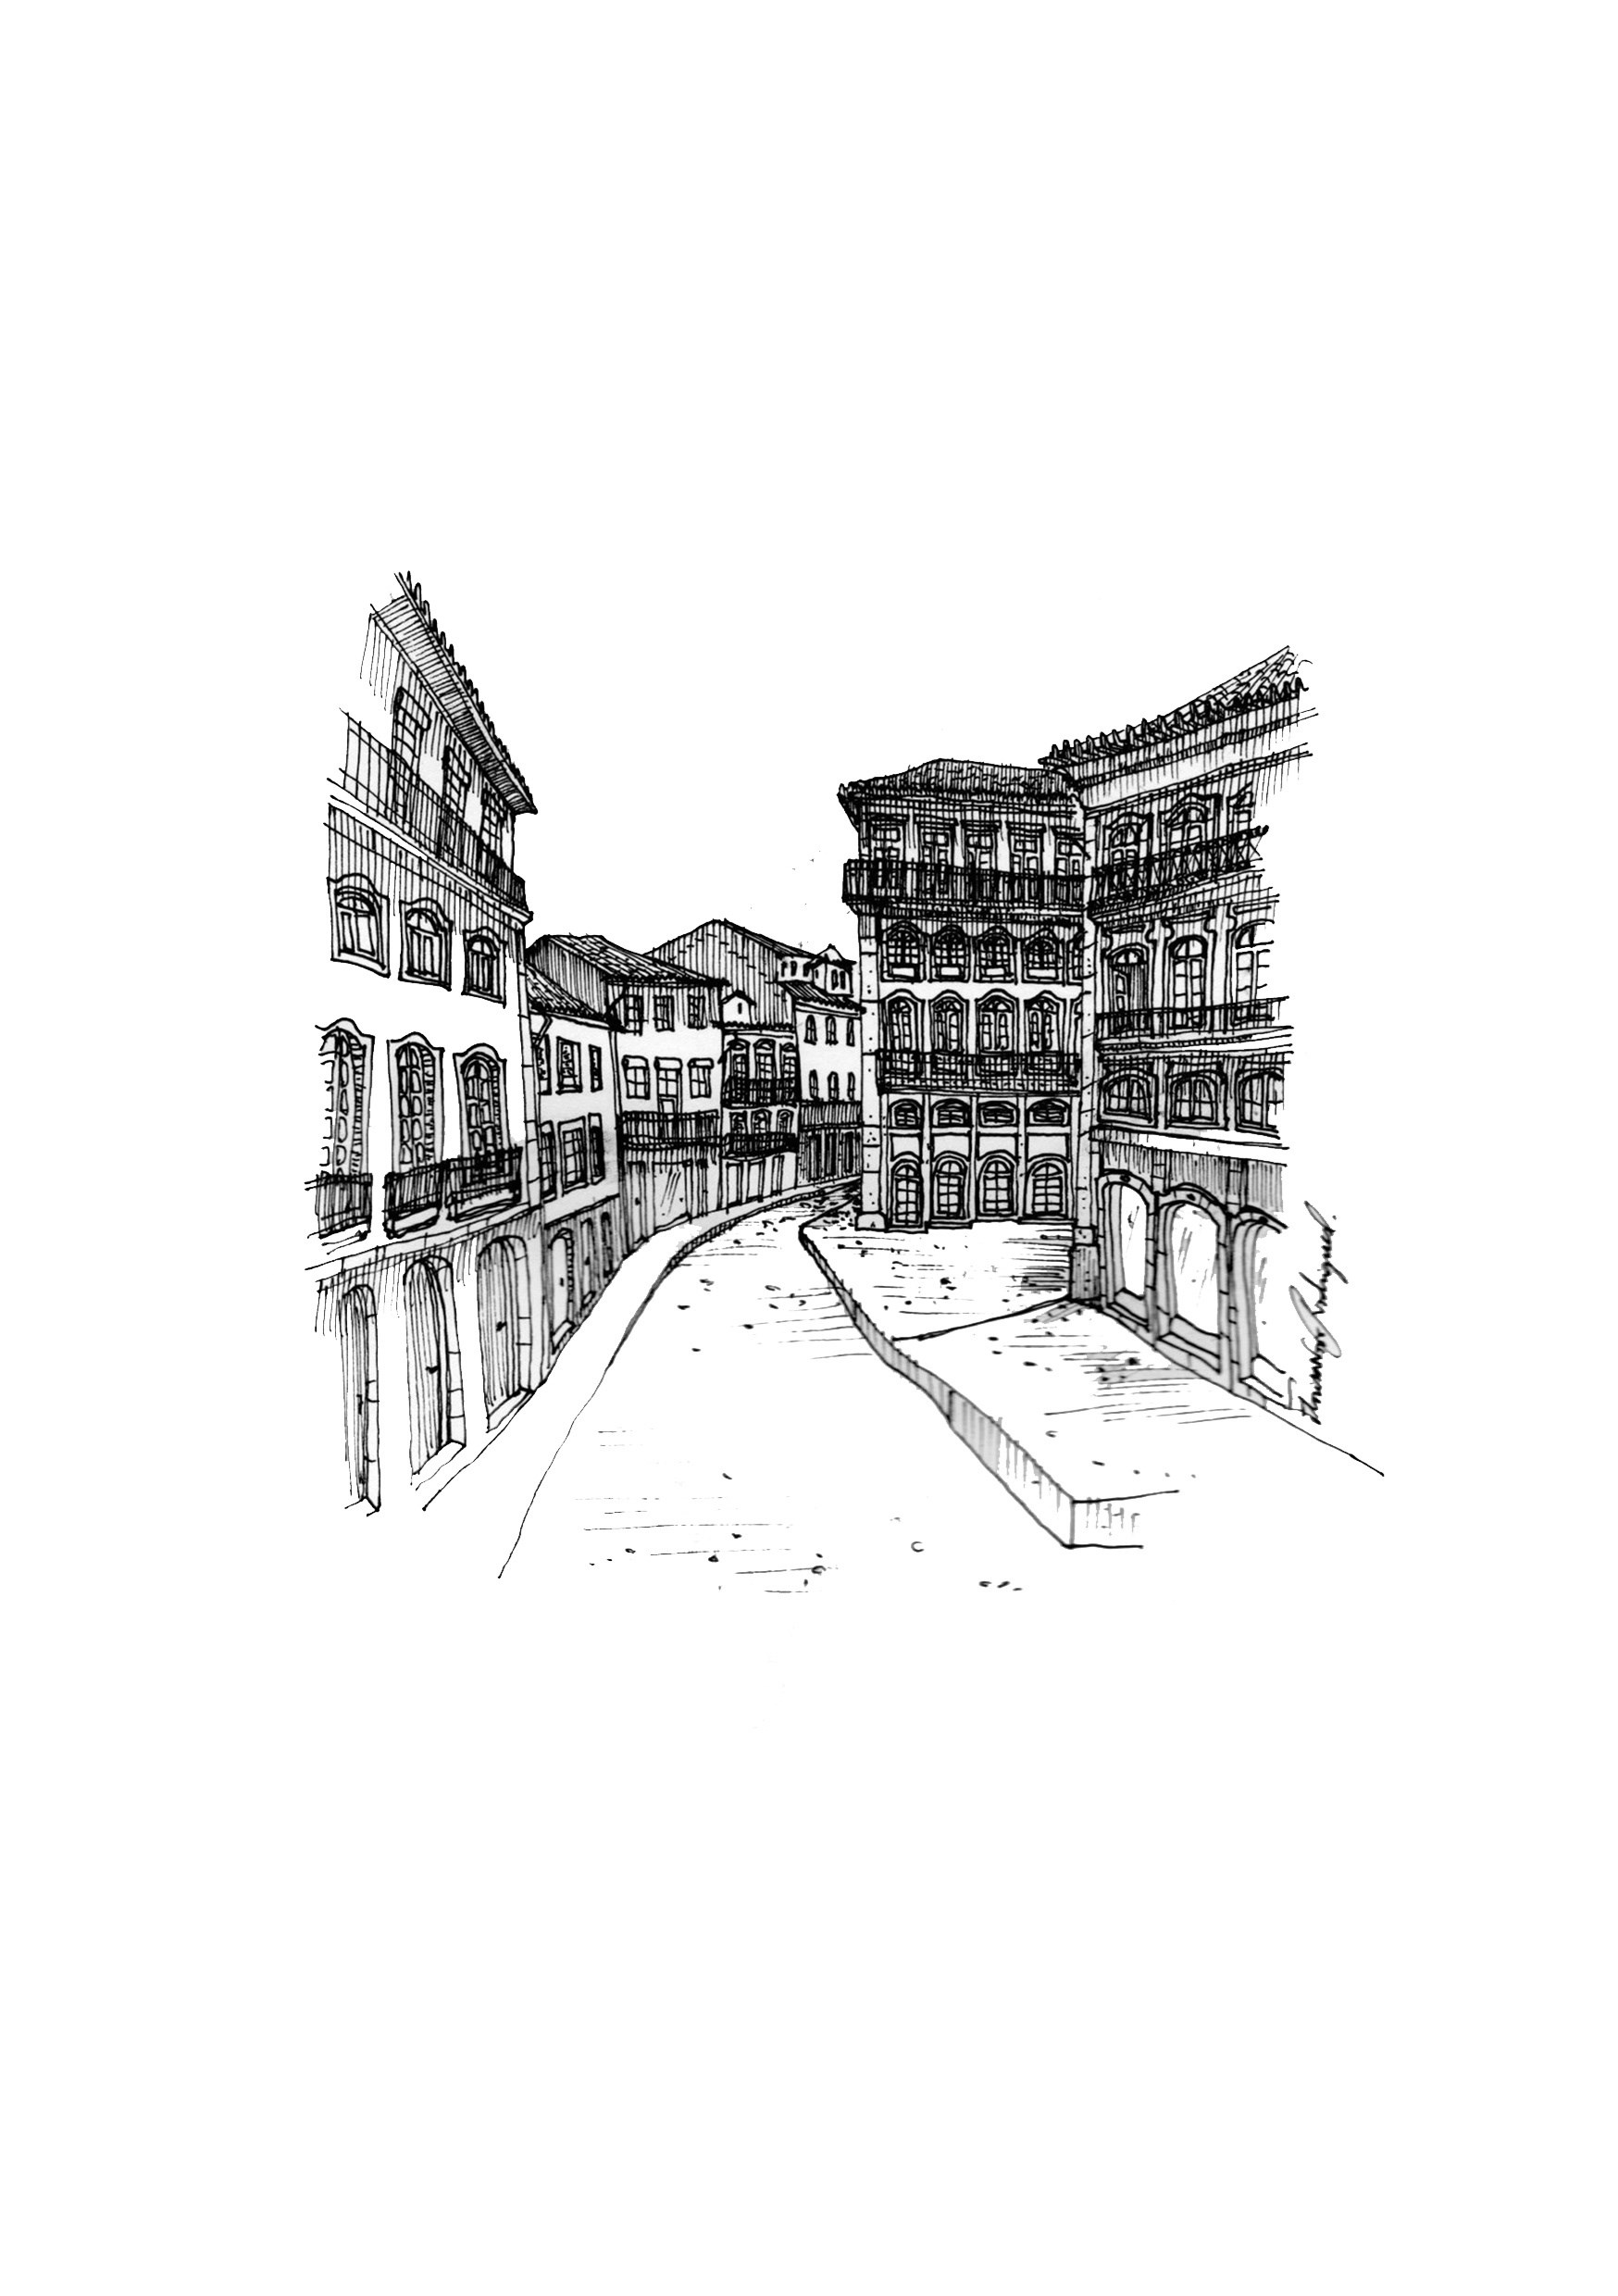 Esquisso 5, original Places Pen Drawing and Illustration by Florisa Novo Rodrigues